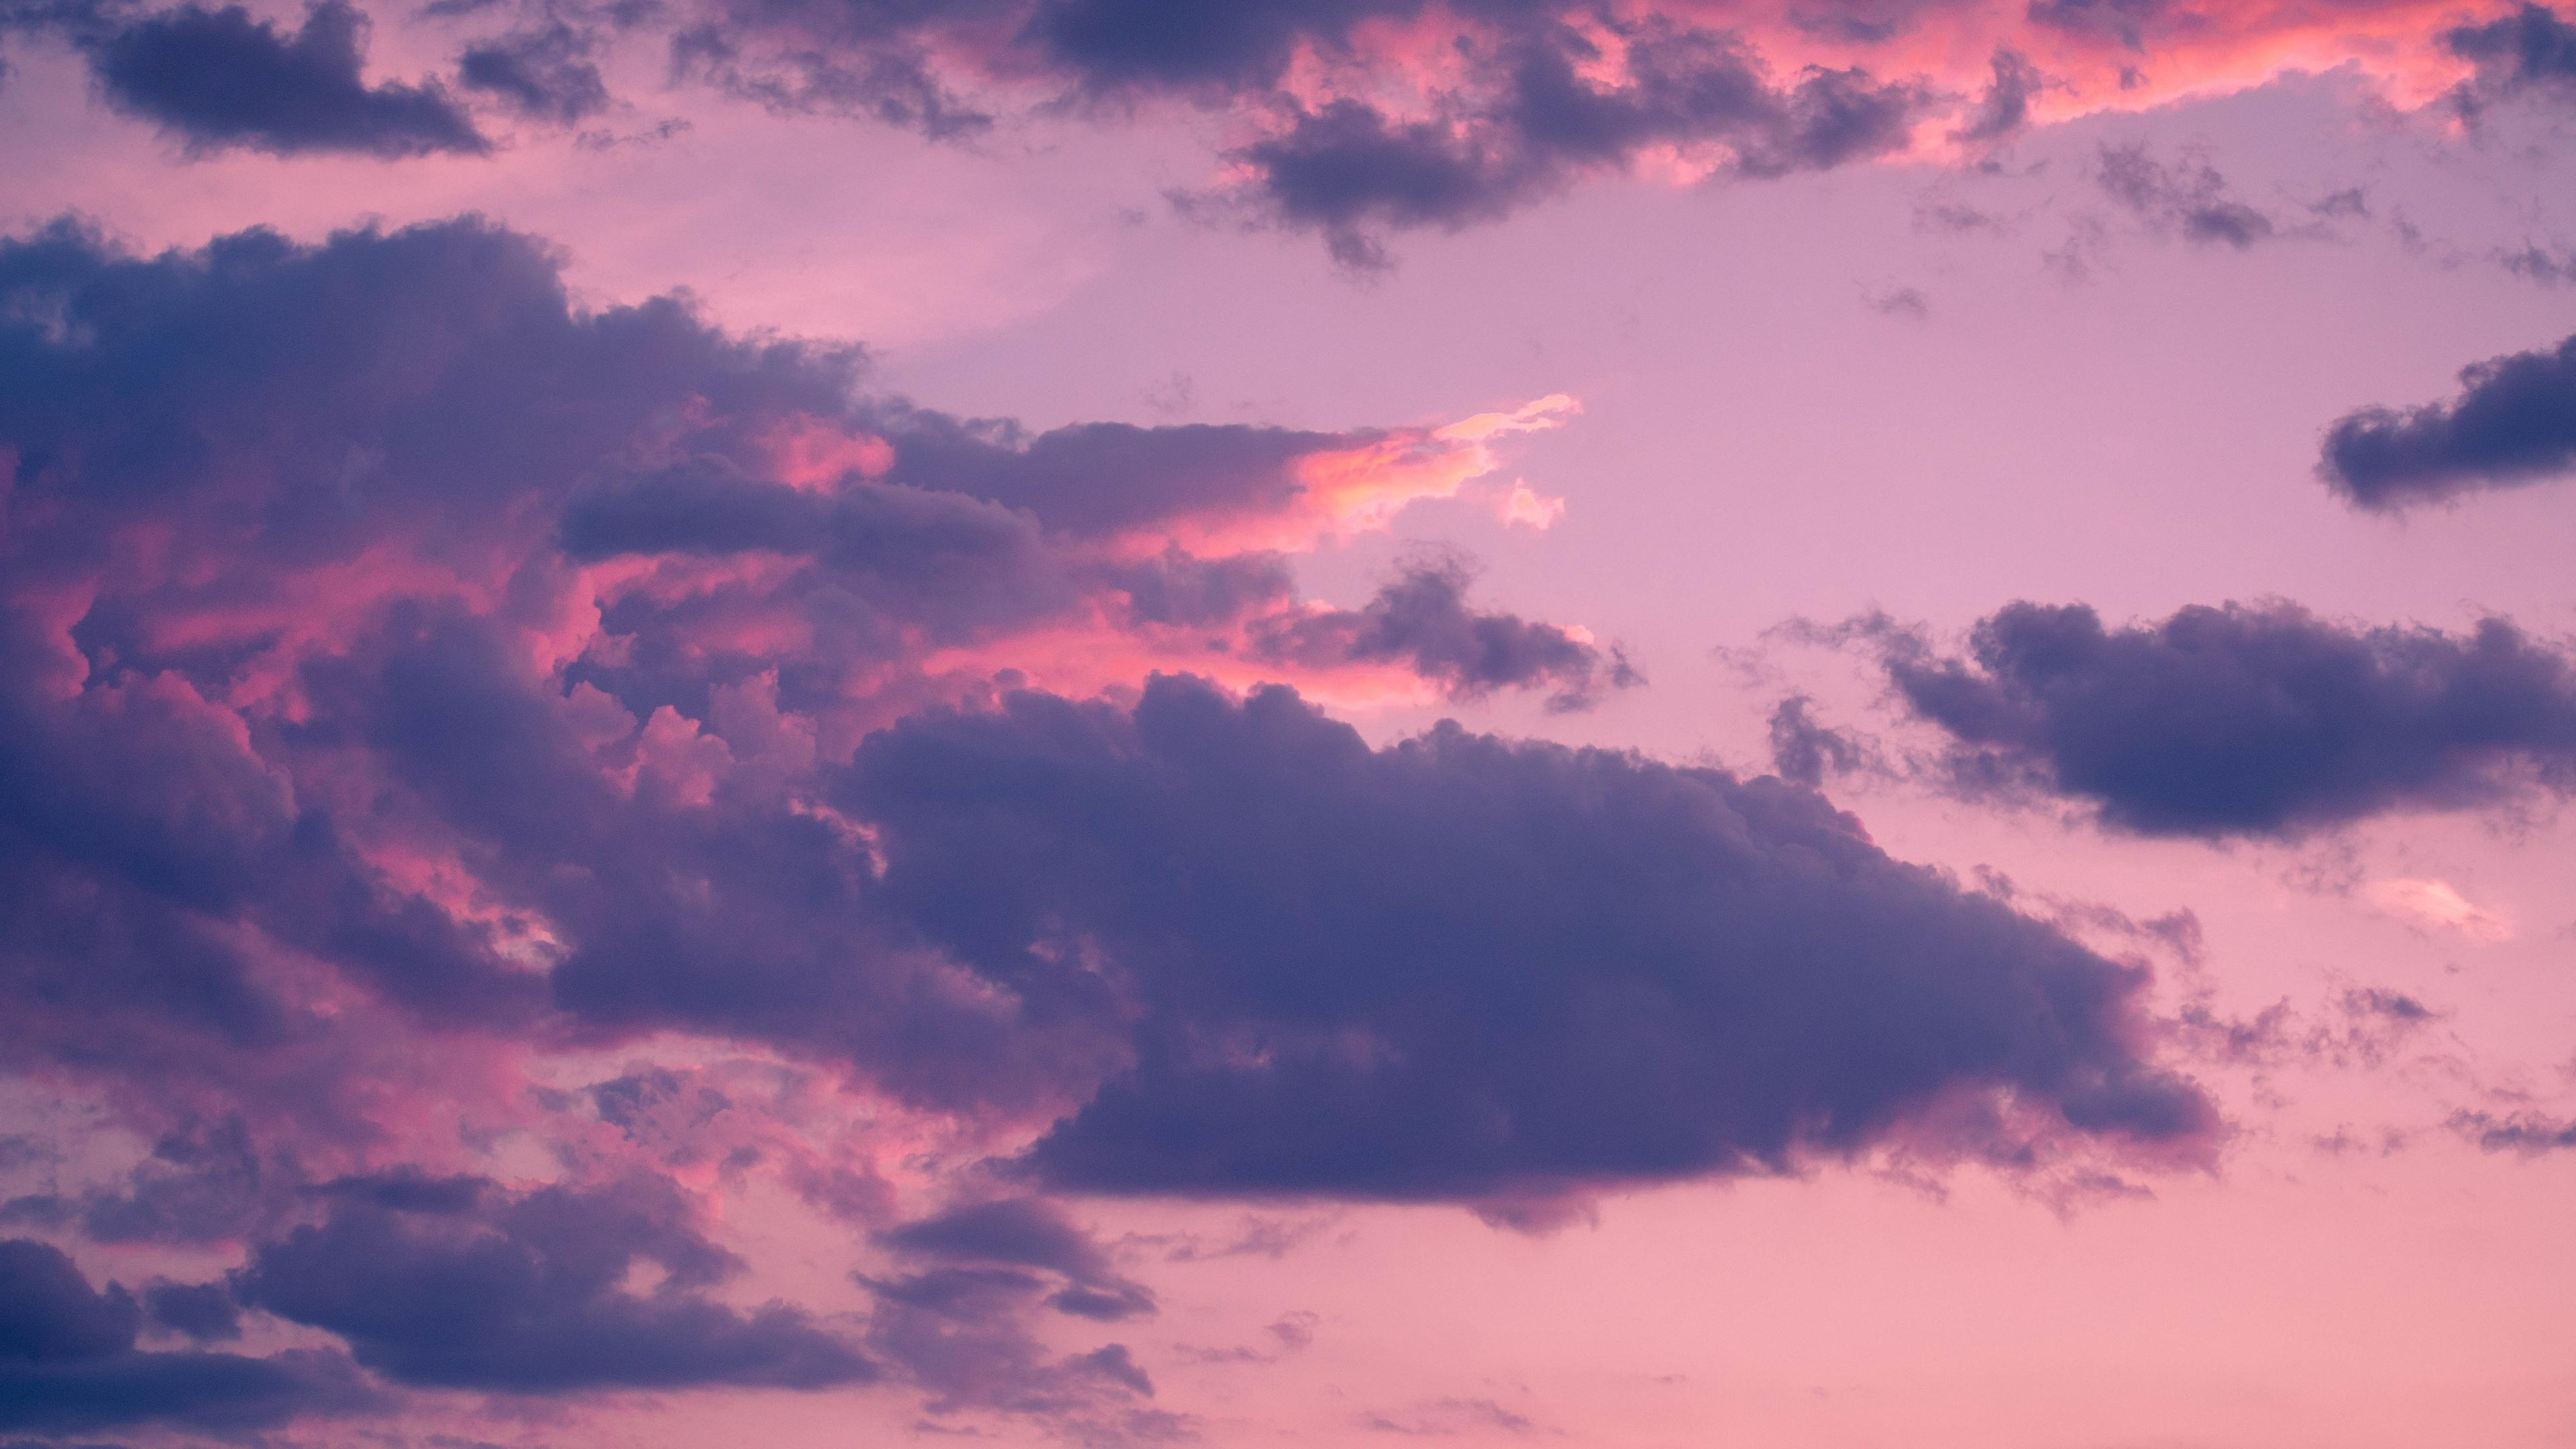 Download wallpapers 3840x2160 clouds, porous, sky, sunset 4k